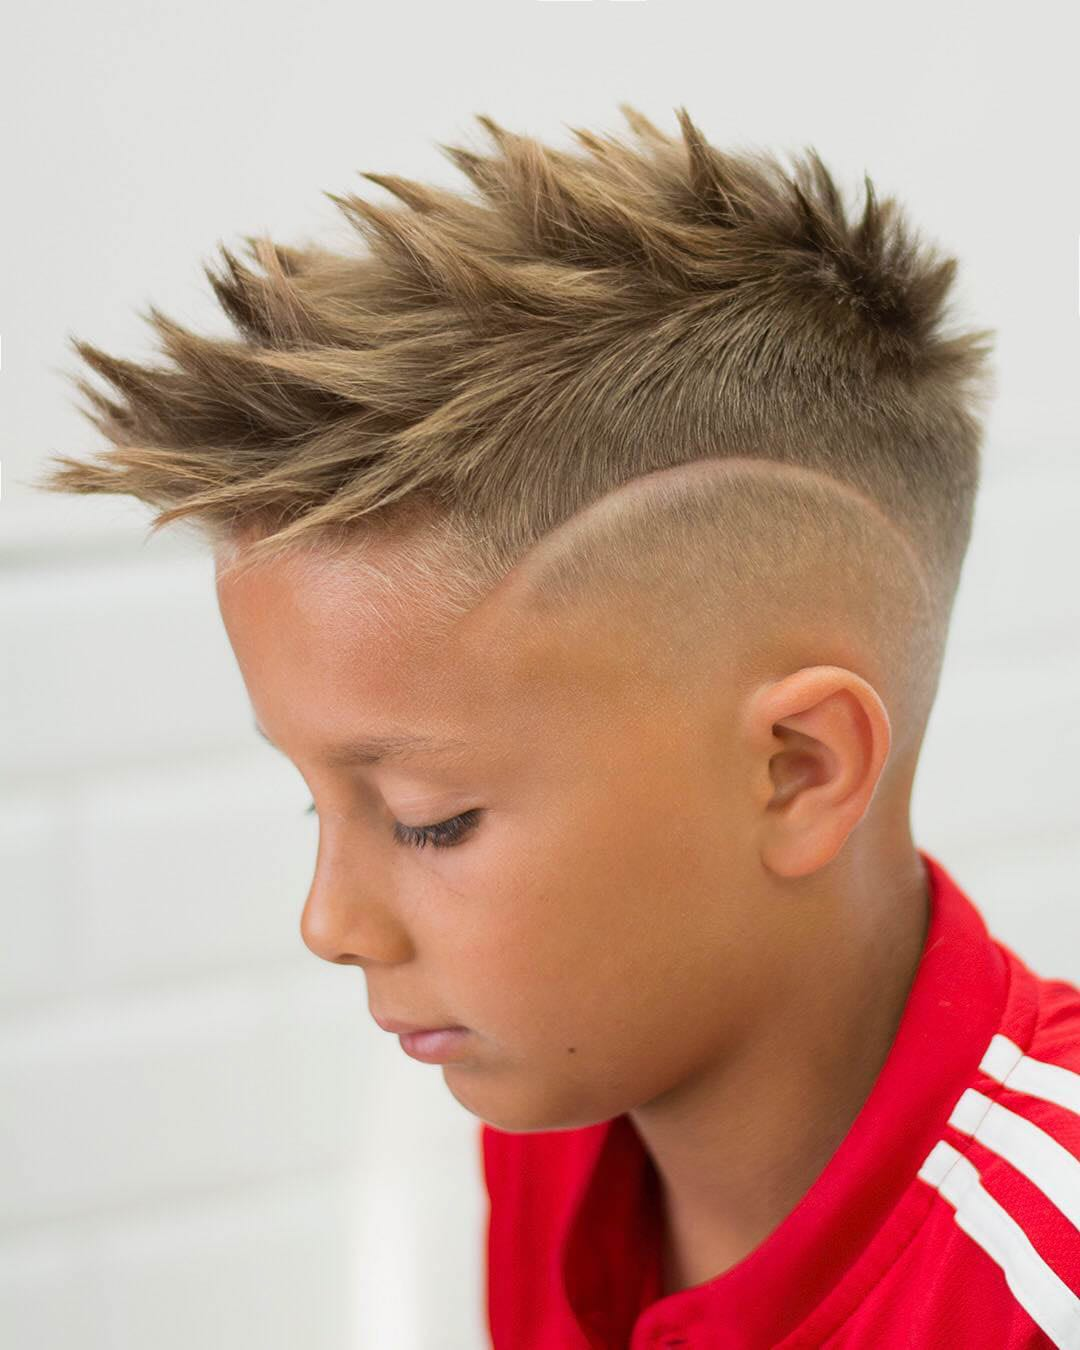 Boy with Spiky Fohawk and Disconnected Undercut